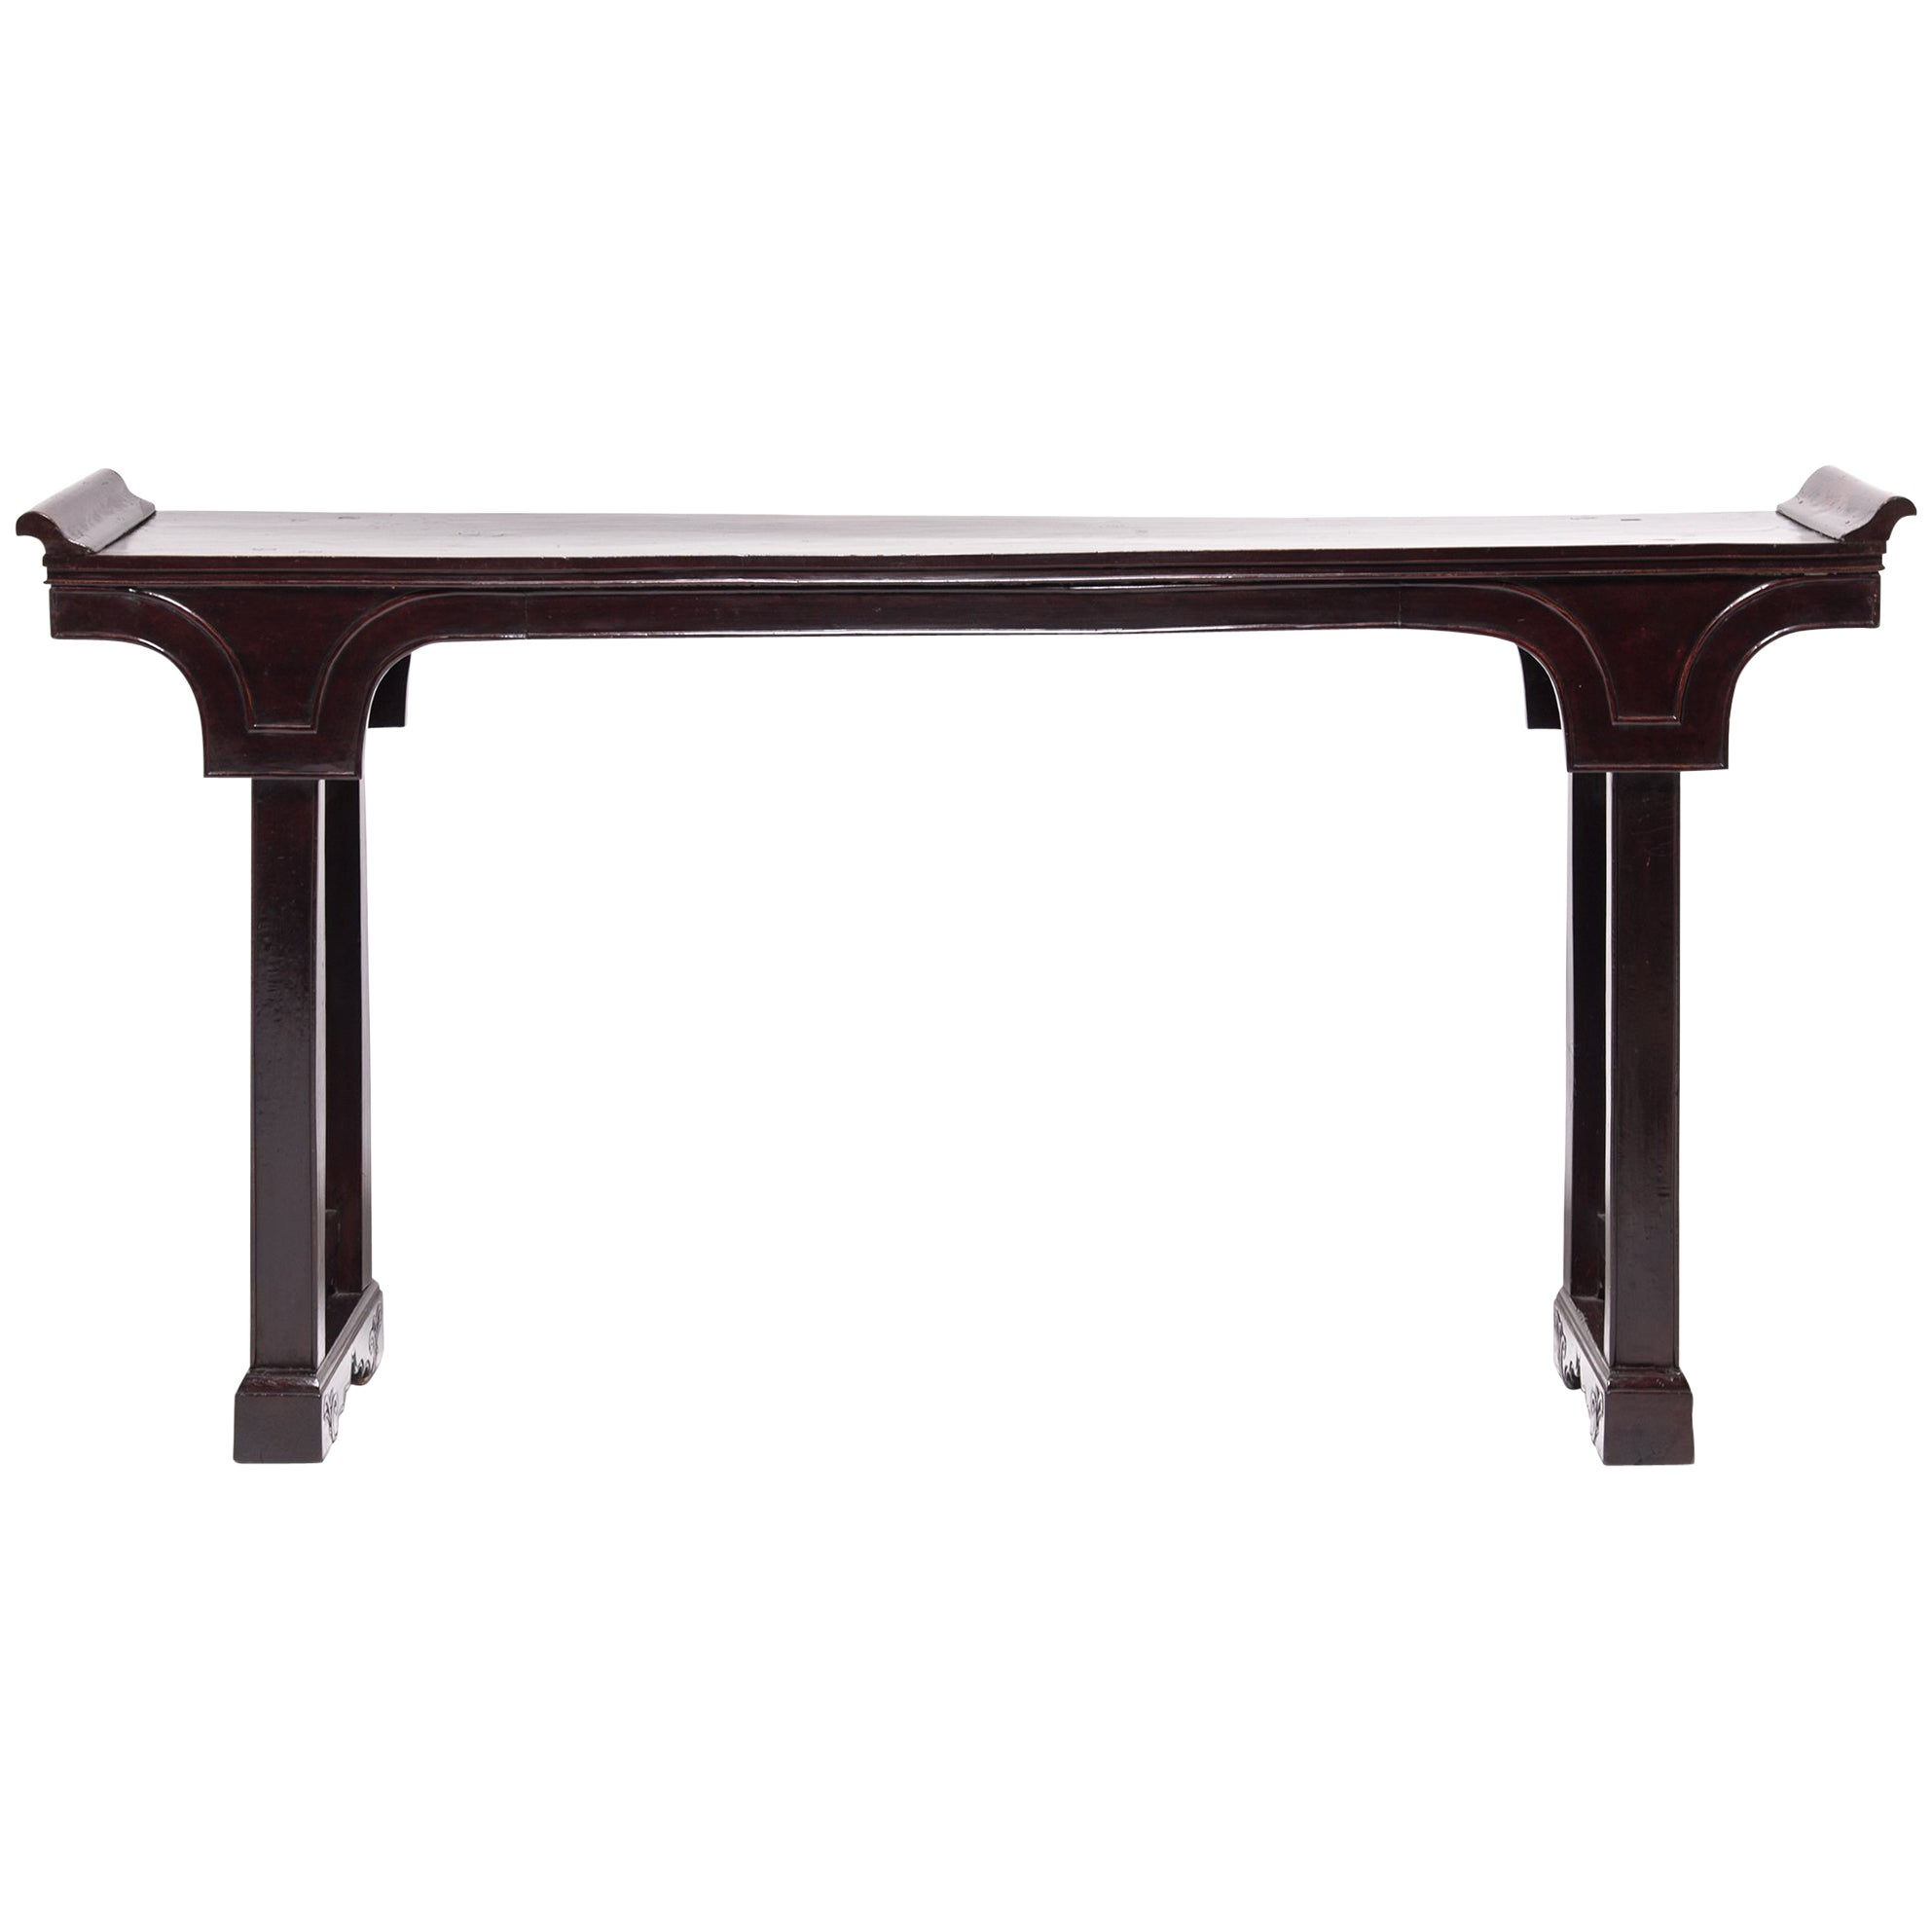 19th Century Chinese Flanked Altar Table